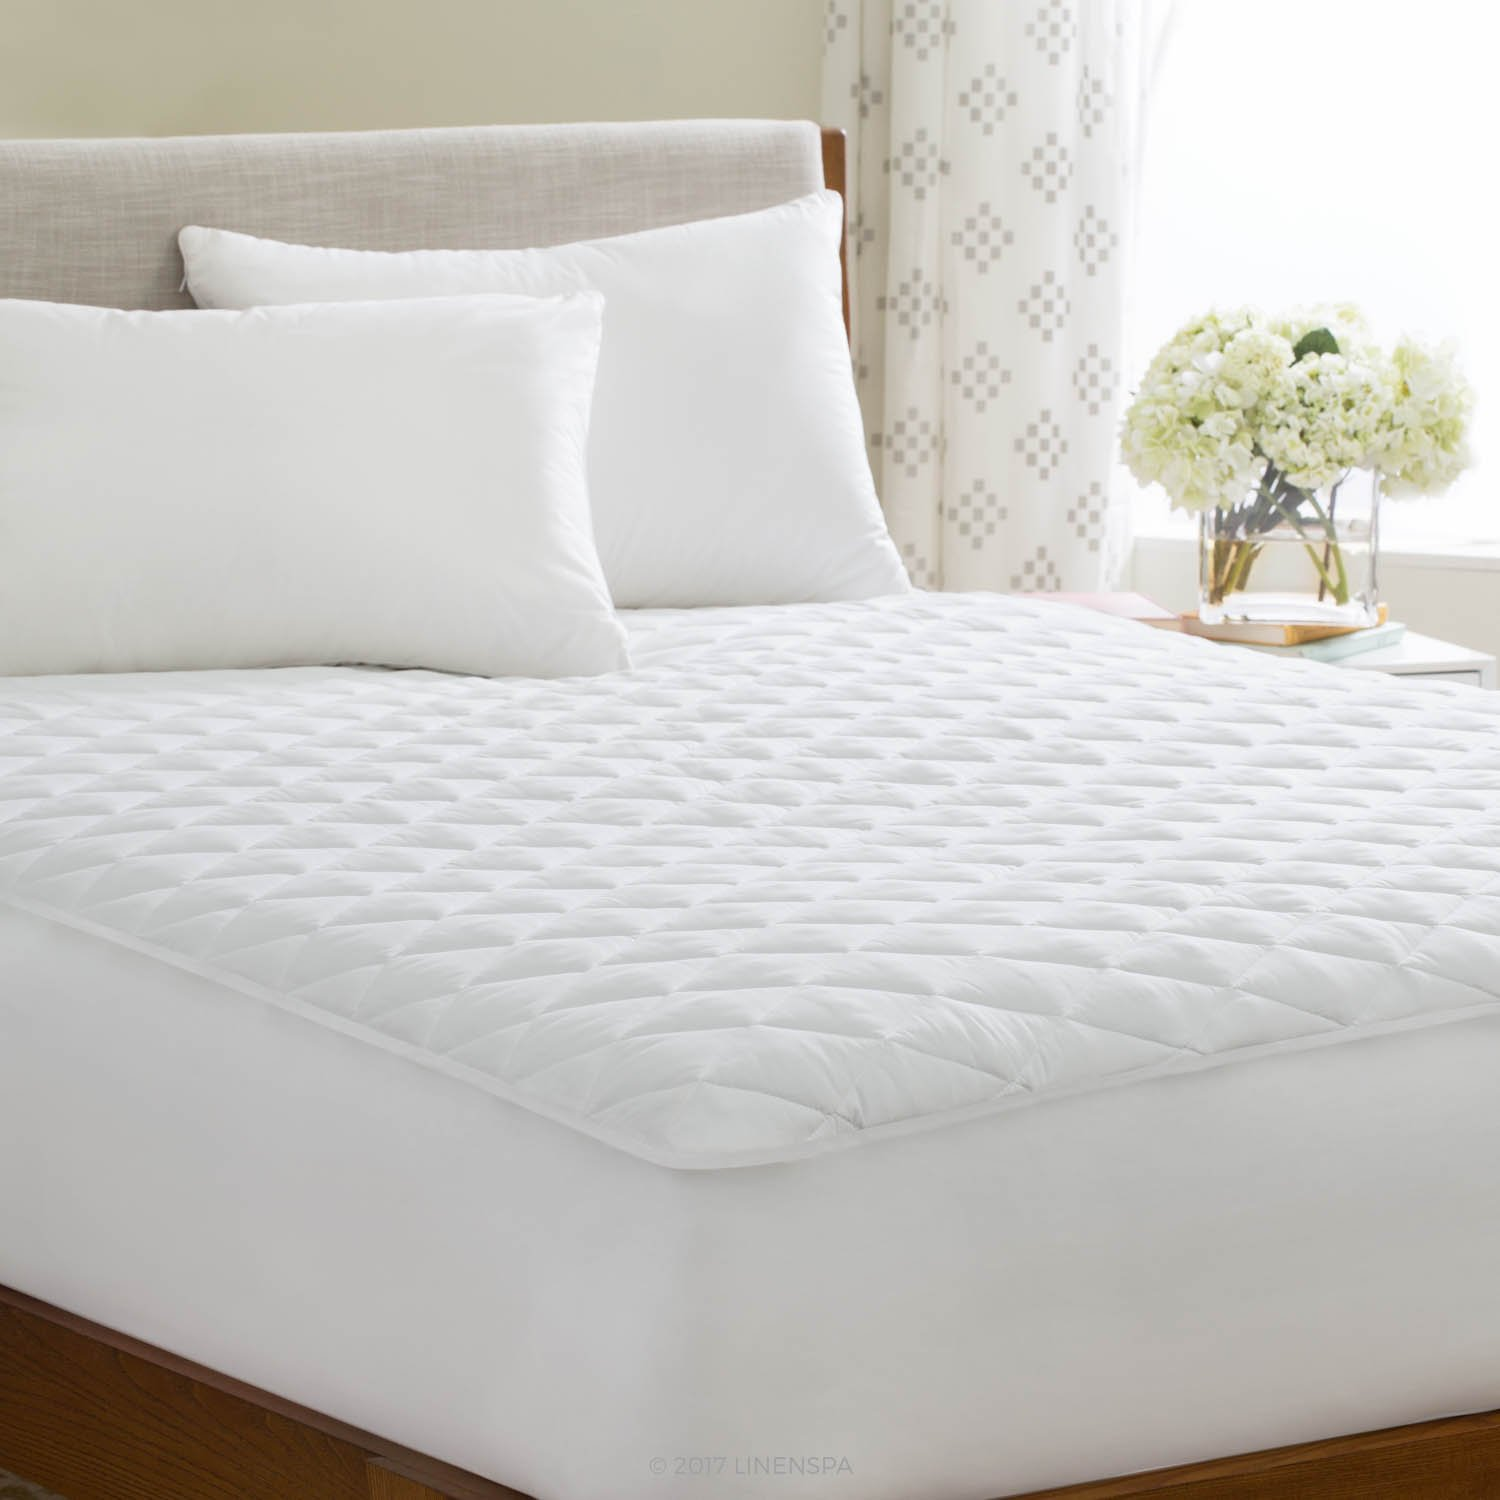 LINENSPA Waterproof Quilted Mattress Pad - Hypoallergenic Fill - Deep Pocket Fitted Skirt - Twin XL CVB Inc LS85TX20WP